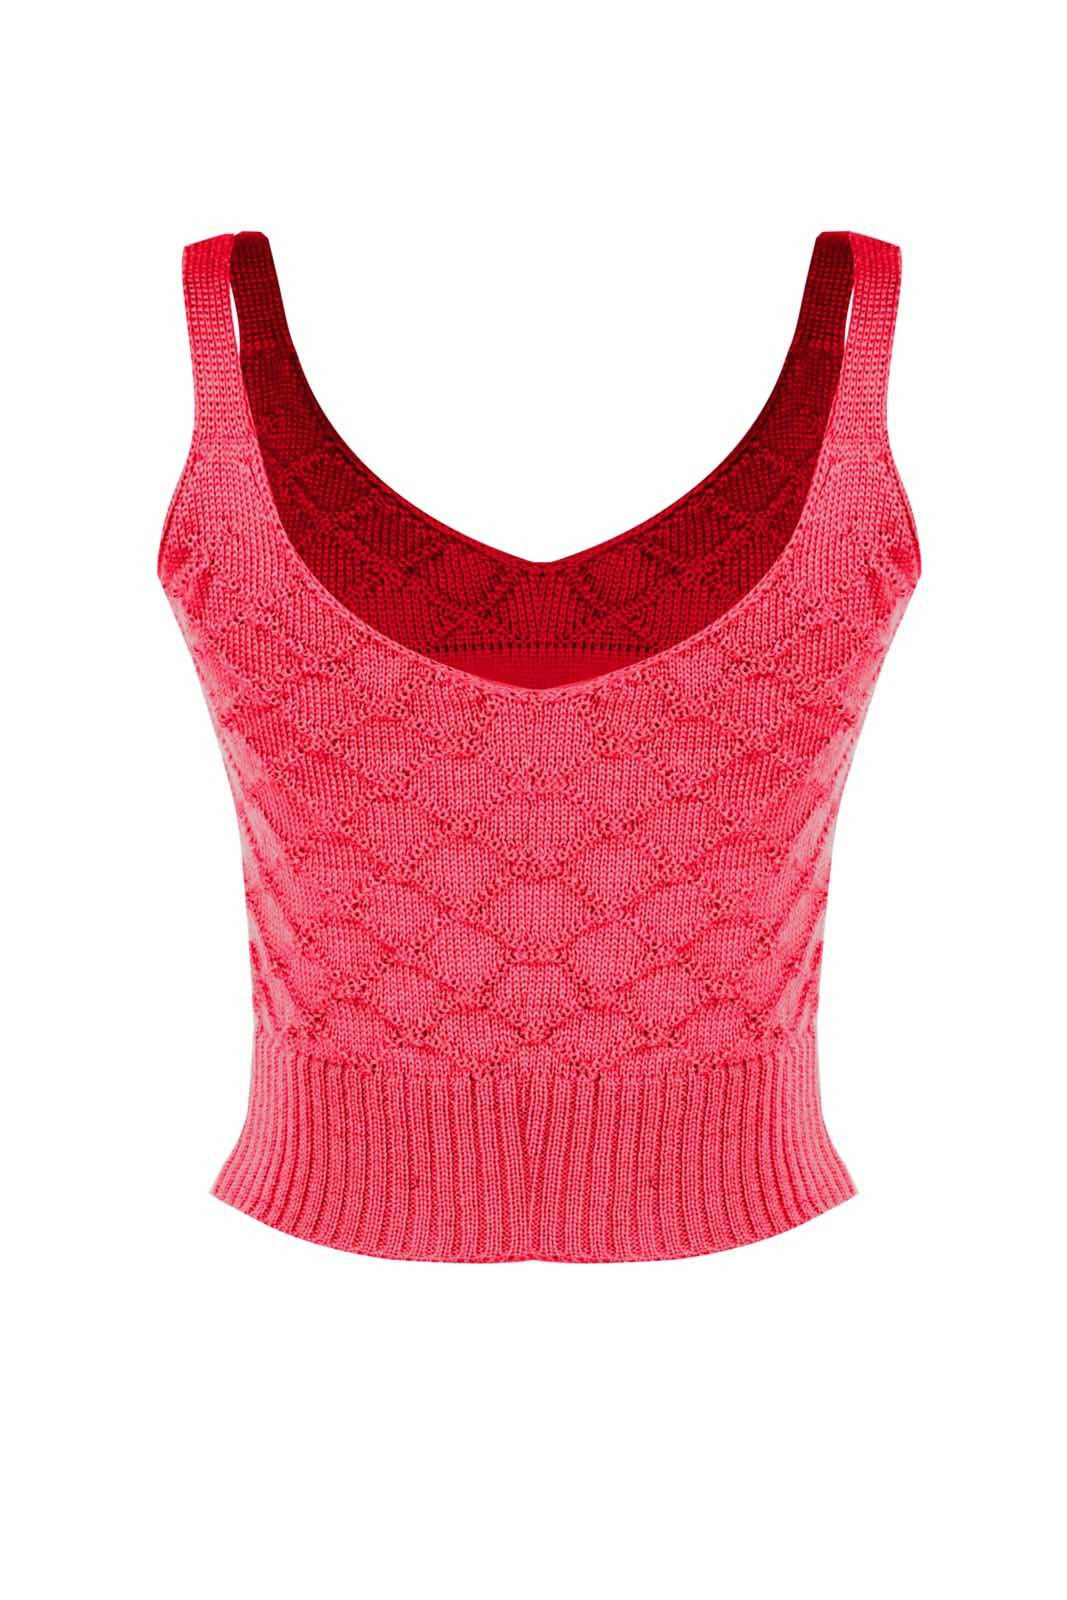 Top Outlet Dri Cropped Tricot Estampado Estampa Ranço Pink